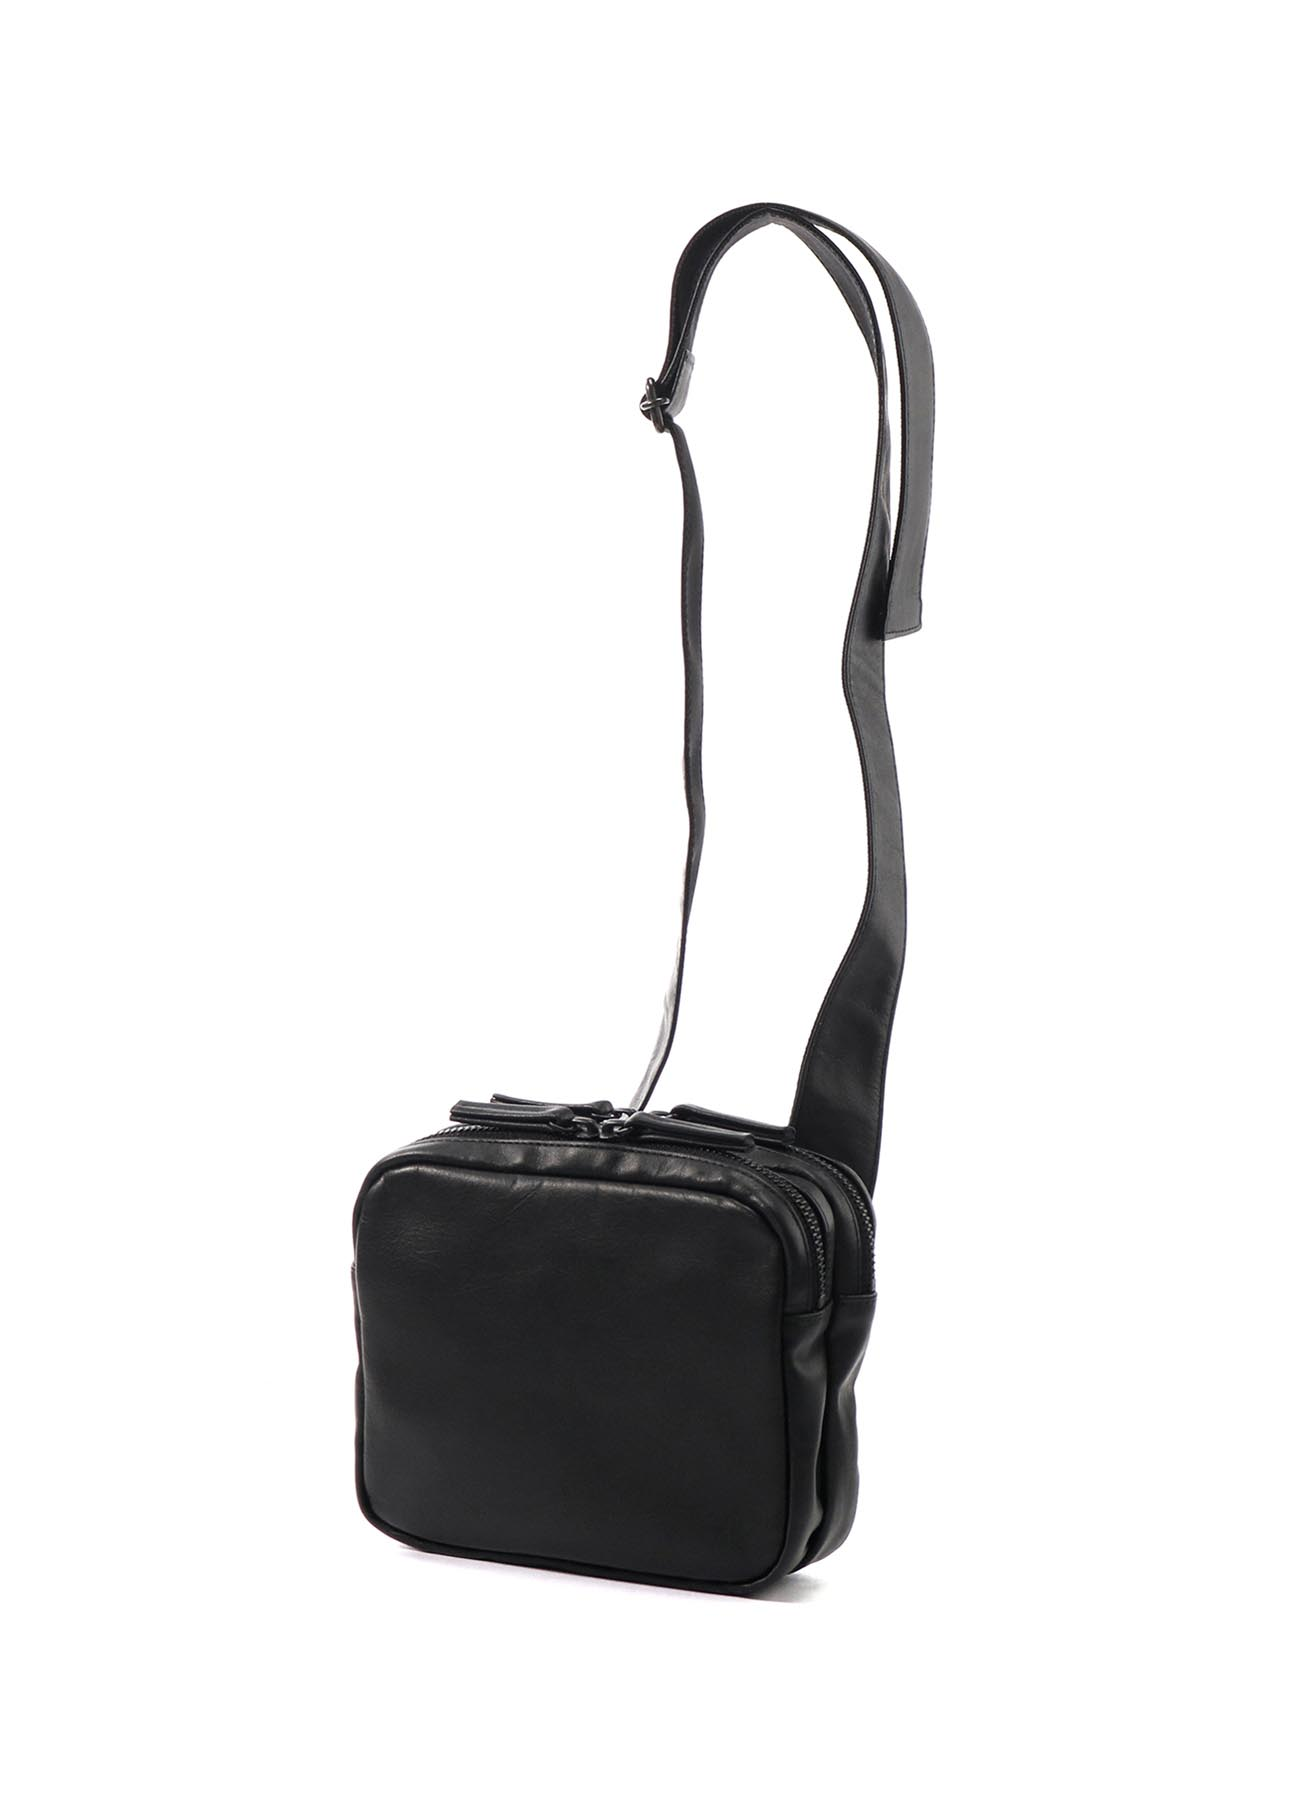 SEMI GLOSS LEATHER B W ZIP LEATHER BODY BAG